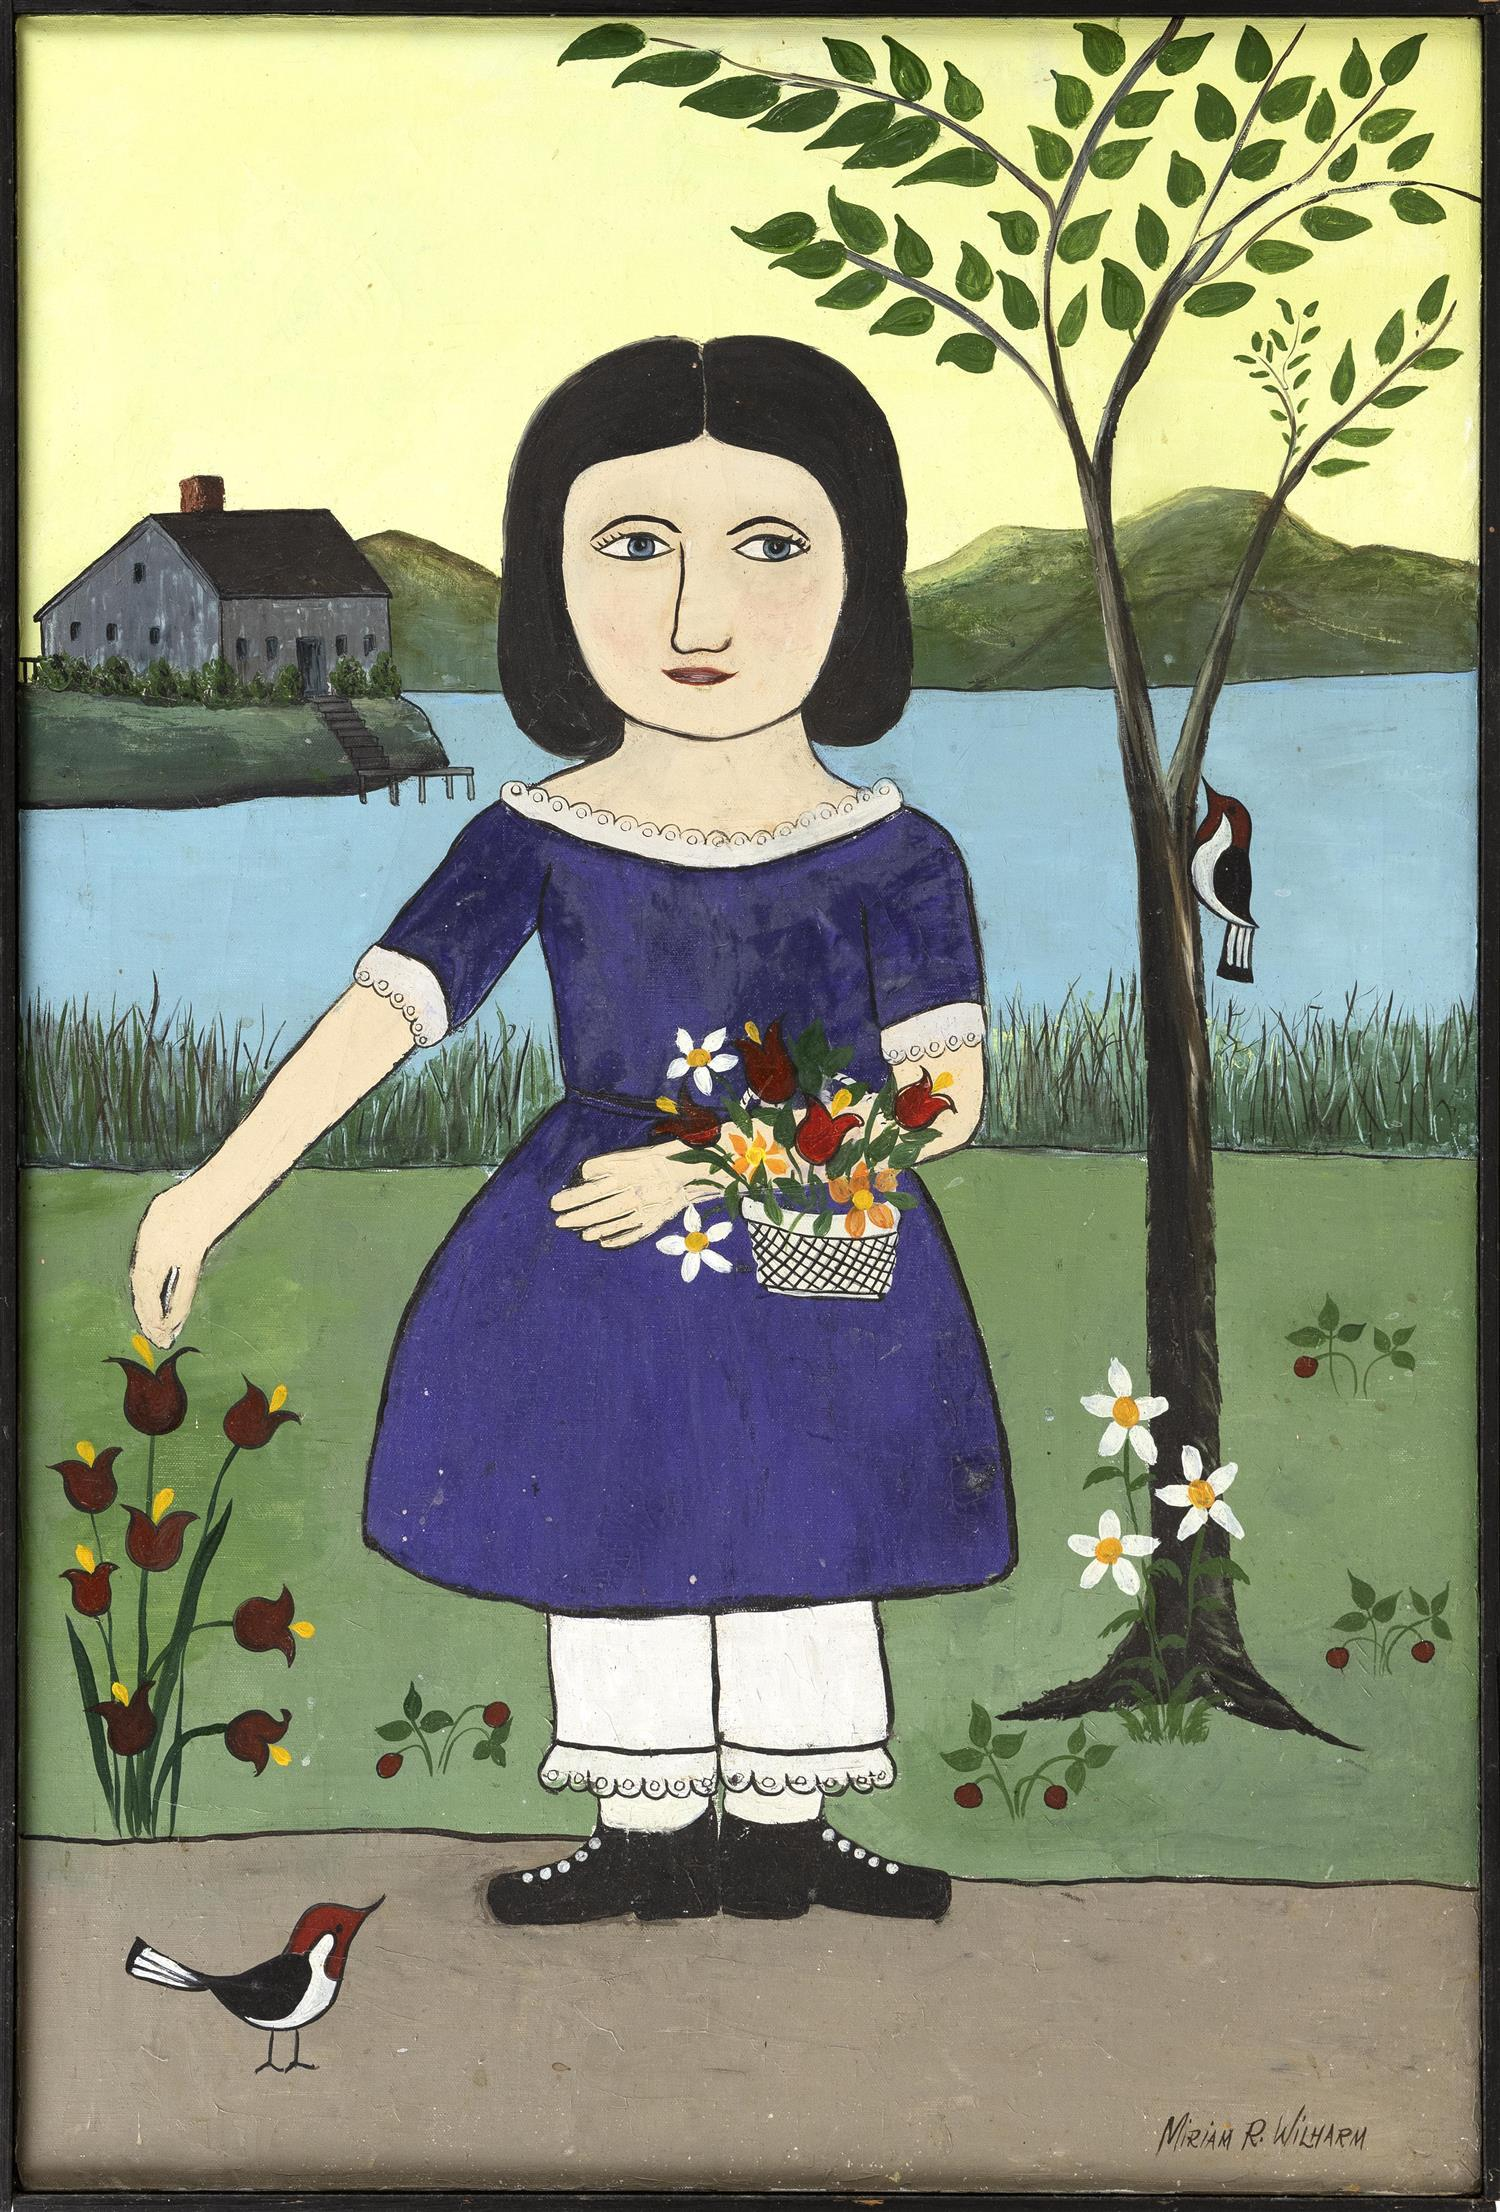 "MIRIAM R. WILHARM, Cape Cod, Massachusetts, 20th Century, Primitive-style portrait of a girl with flowers., Oil on canvas, 36"" x 24""..."